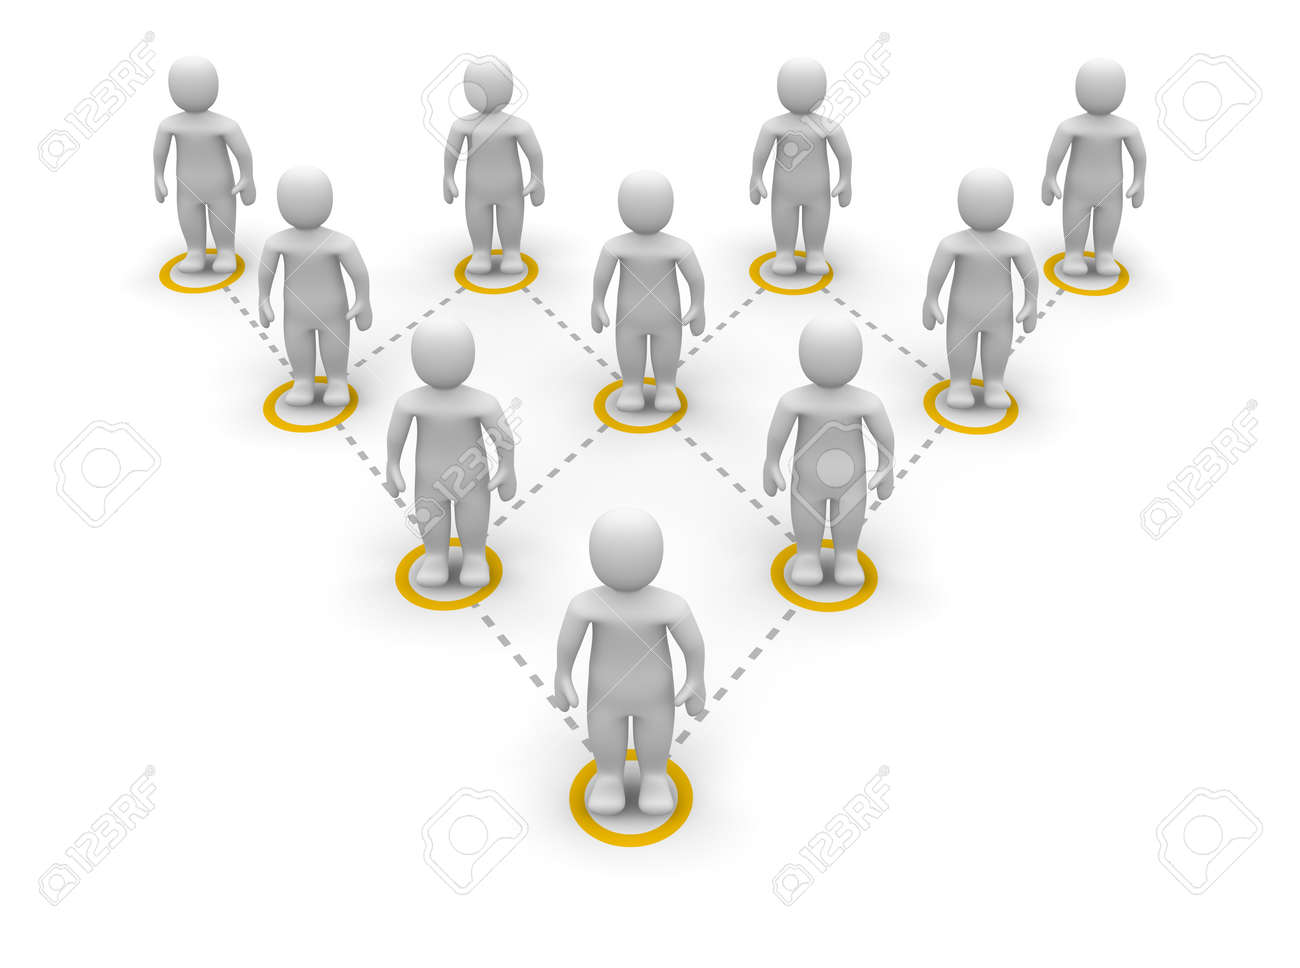 Pyramid team hierarchy. 3d rendered illustration. Stock Photo - 7101839